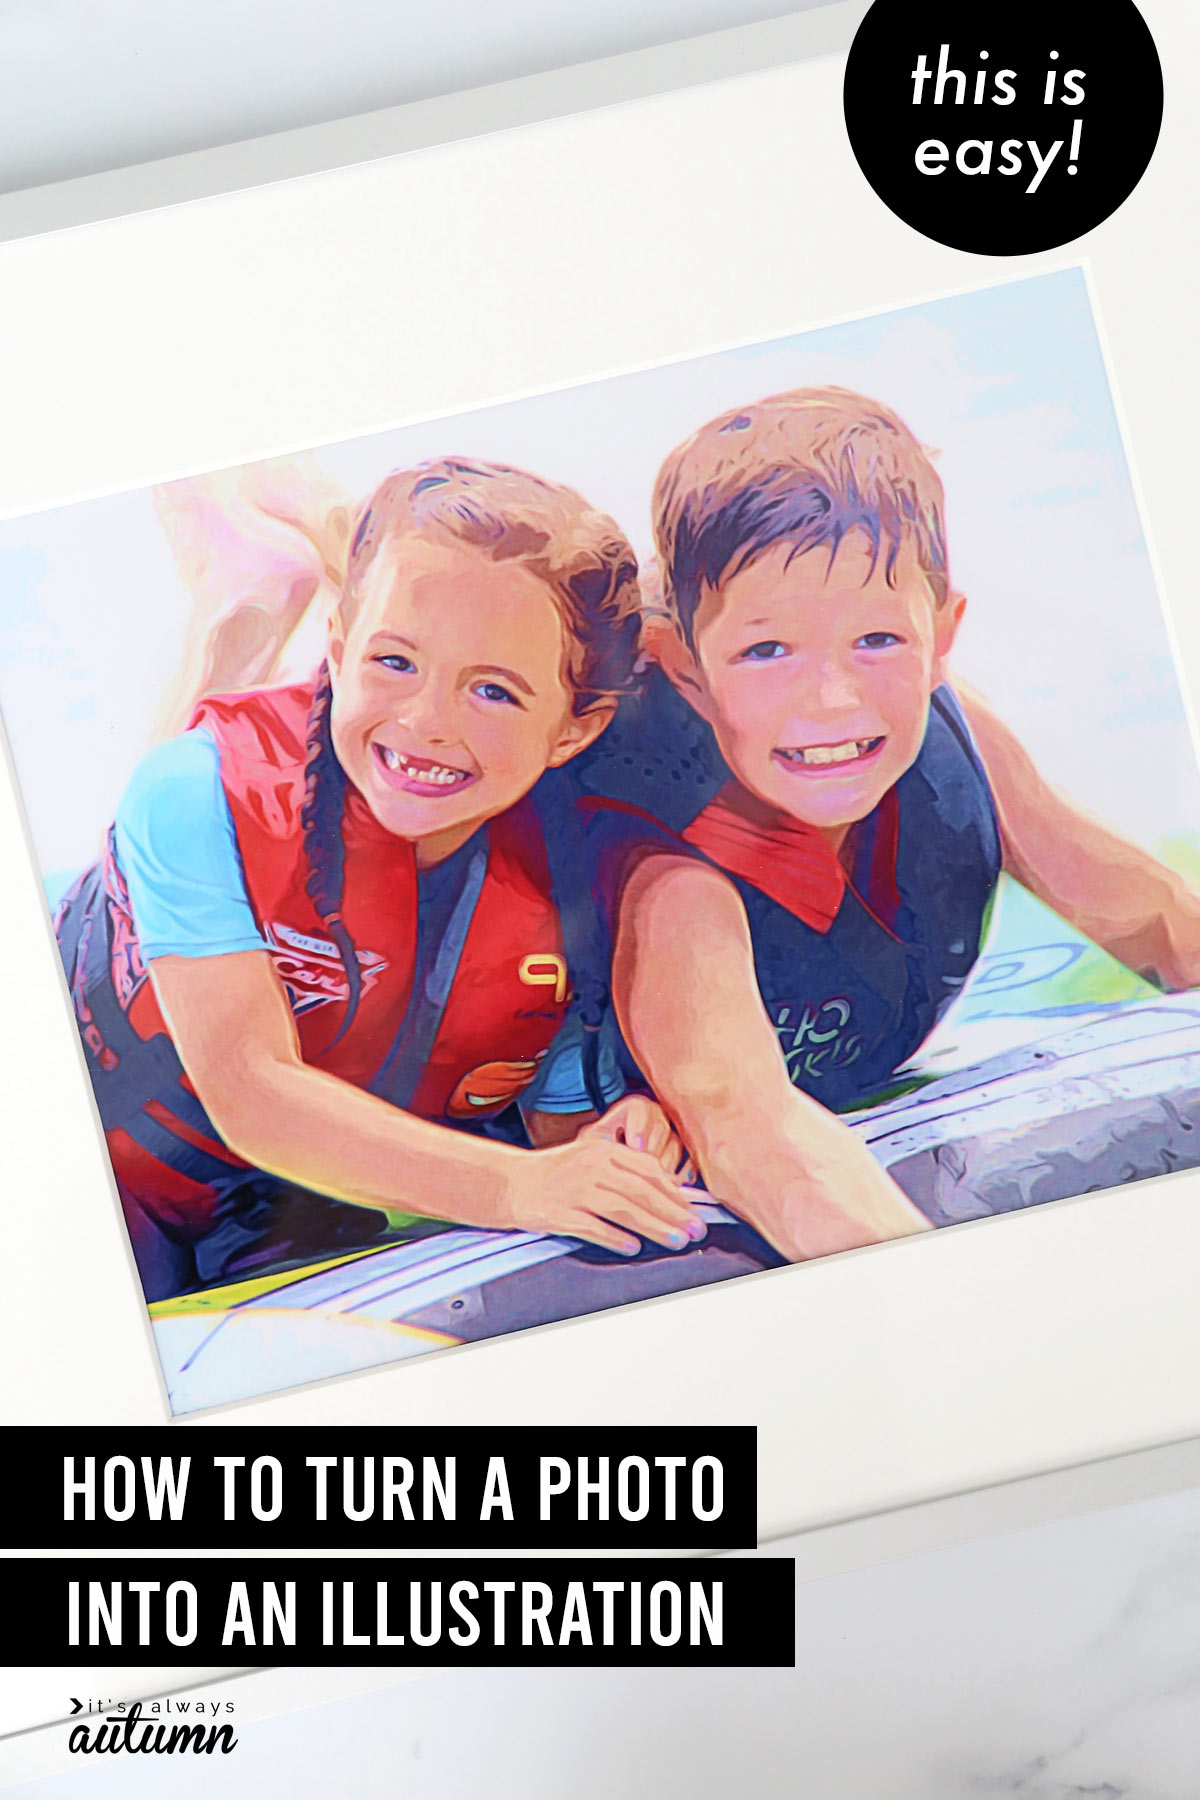 Illustrated photo of brother and sister playing in the water with text: how to turn a photo into an illustration